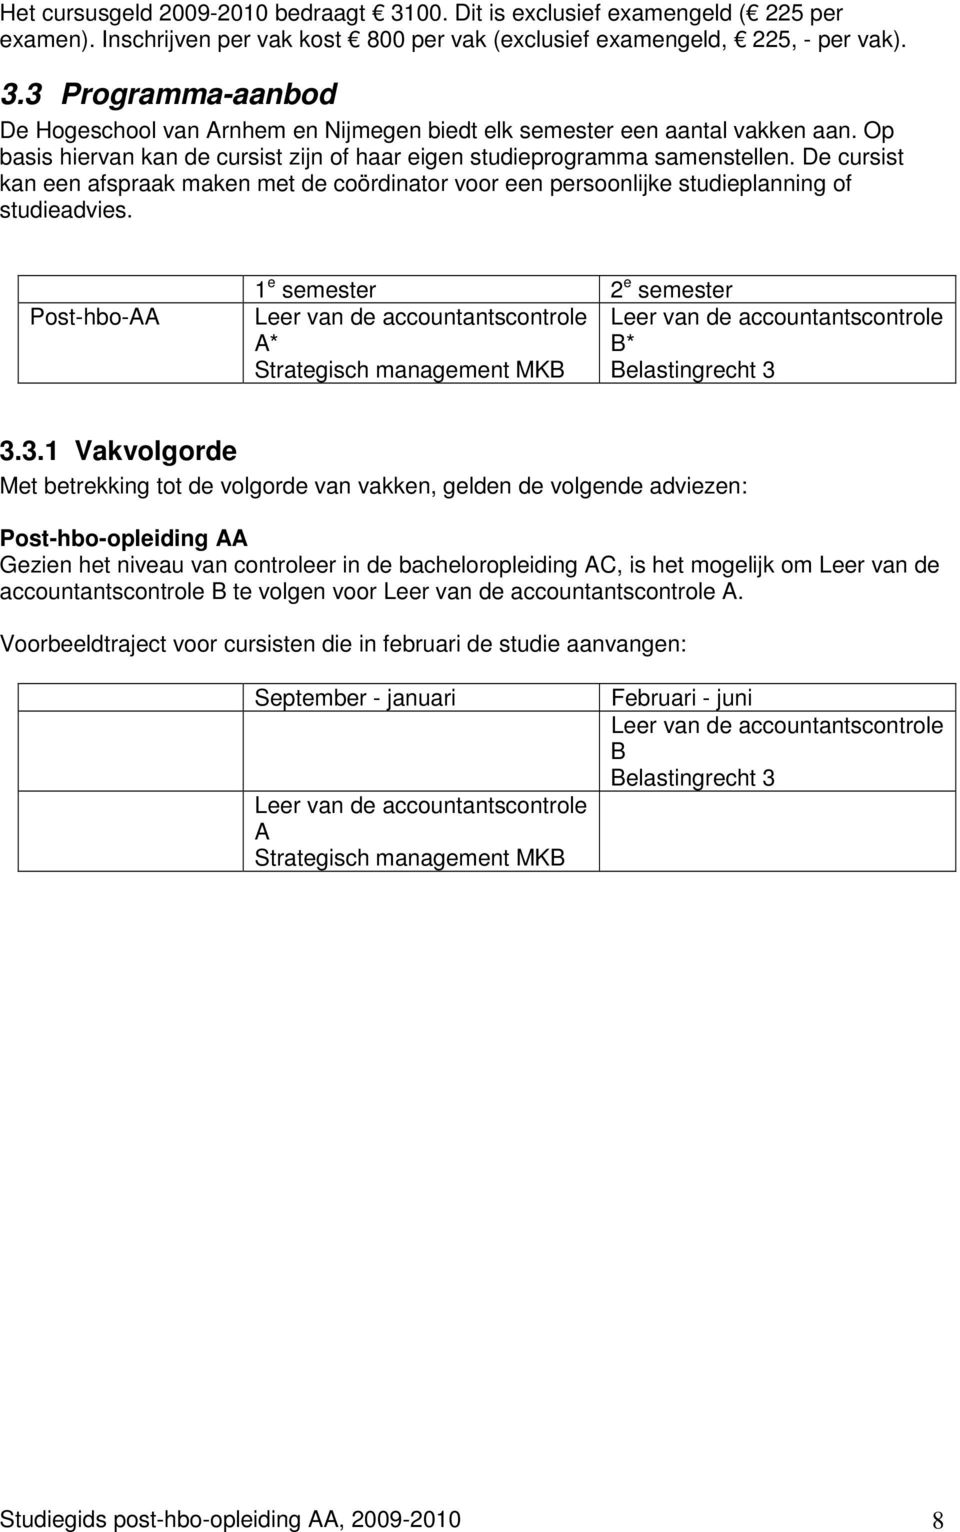 Post-hbo-AA 1 e semester 2 e semester Leer van de accountantscontrole Leer van de accountantscontrole A* B* Strategisch management MKB Belastingrecht 3